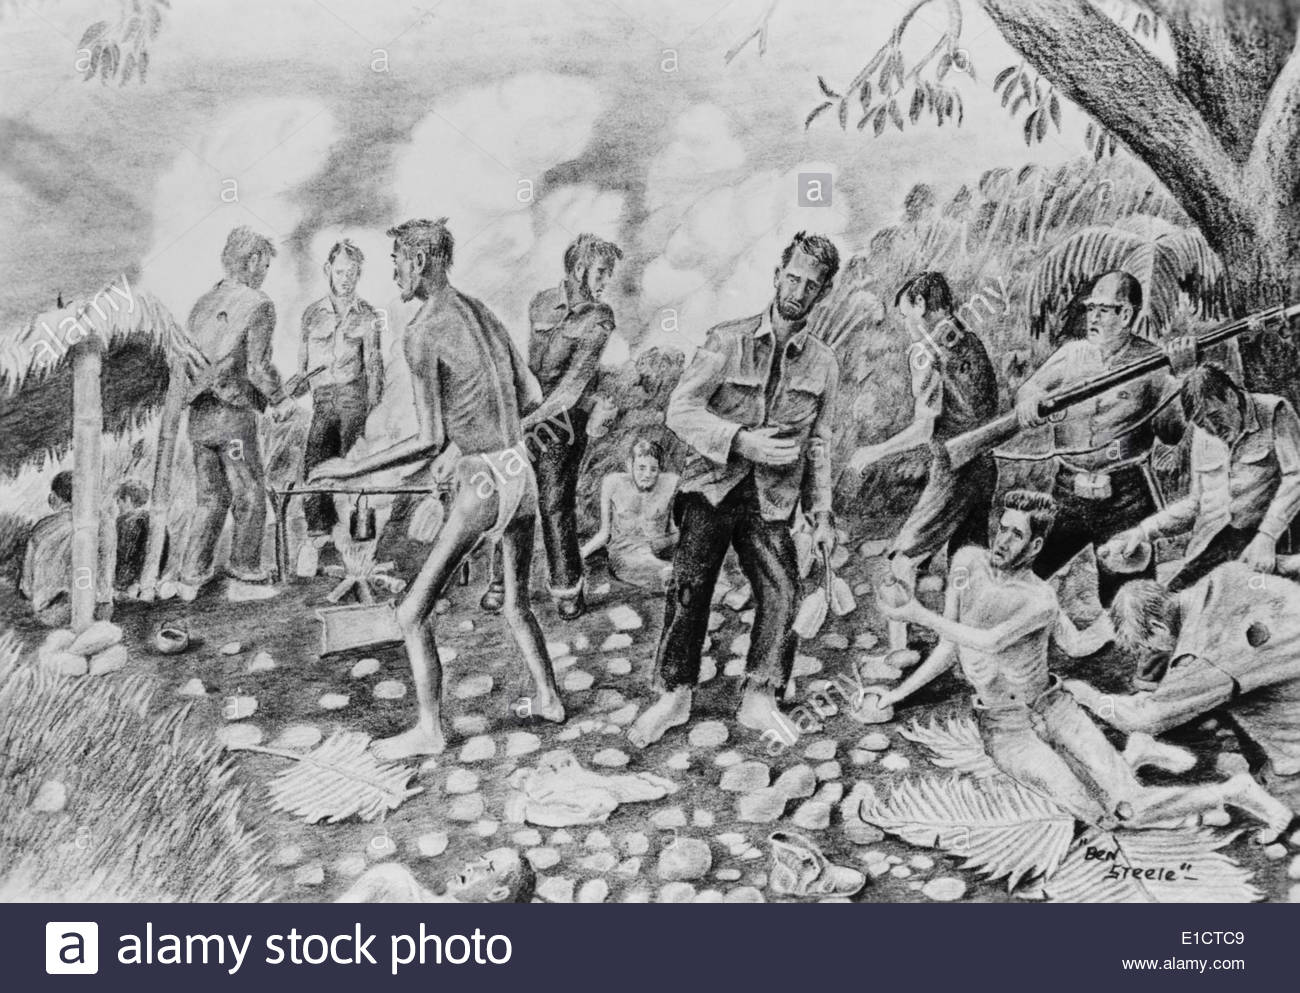 1300x993 Drawing By Pow Ben Steele, Depicting Sick U.s. Soldiers As